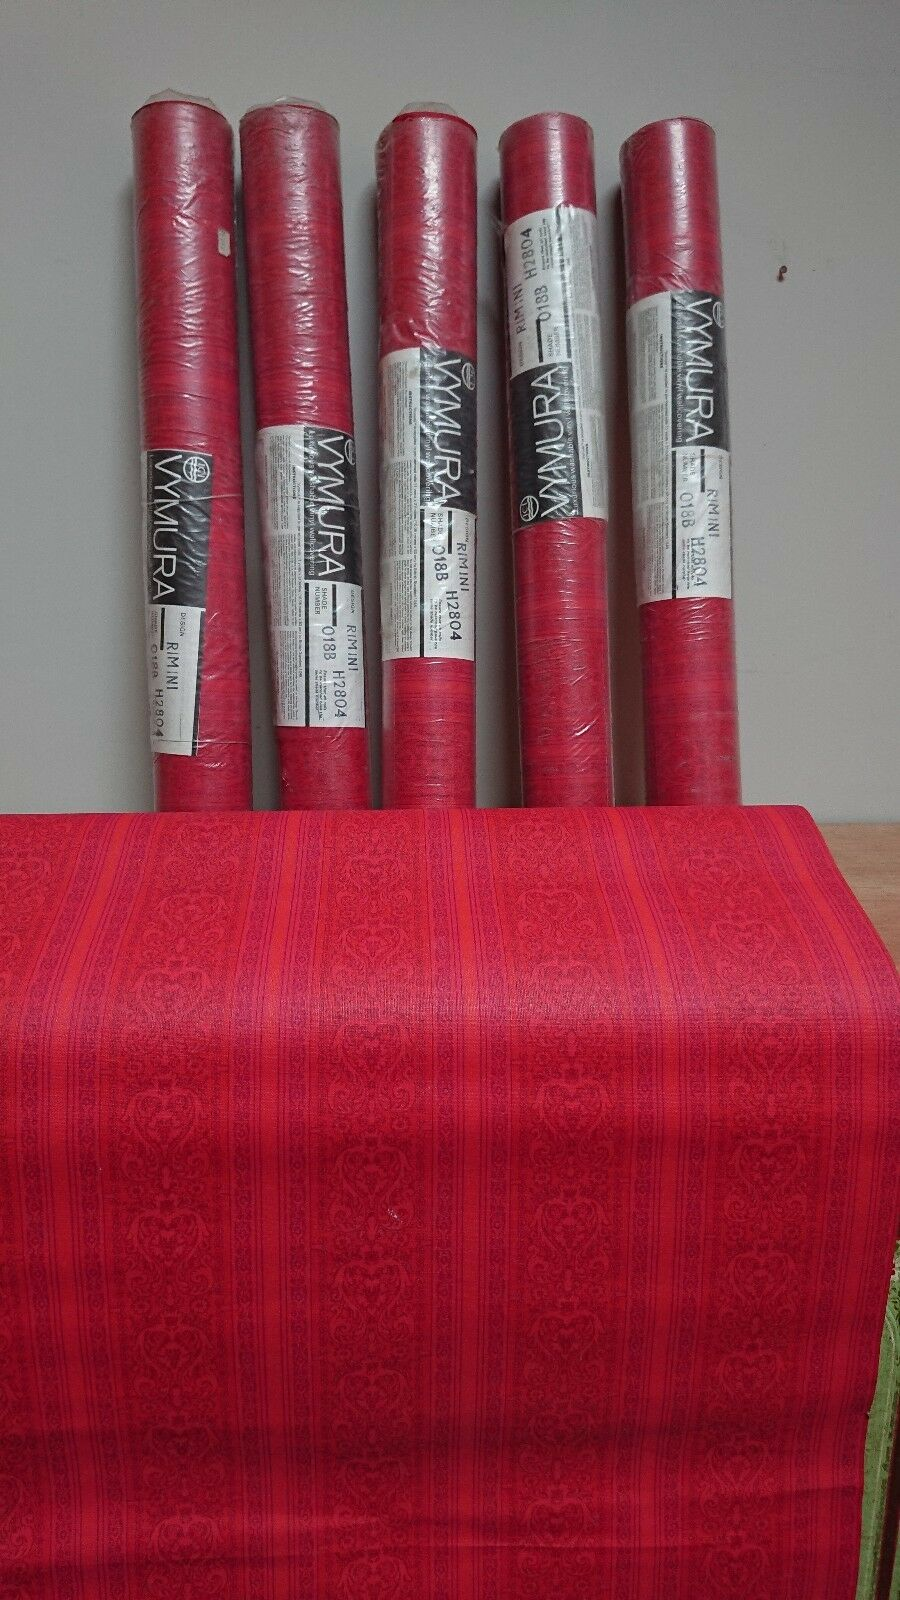 4 X ROLLS AUTHENTIC VINTAGE RETRO VYMURA rot PATTERNED Wallpaper film prop 1960s